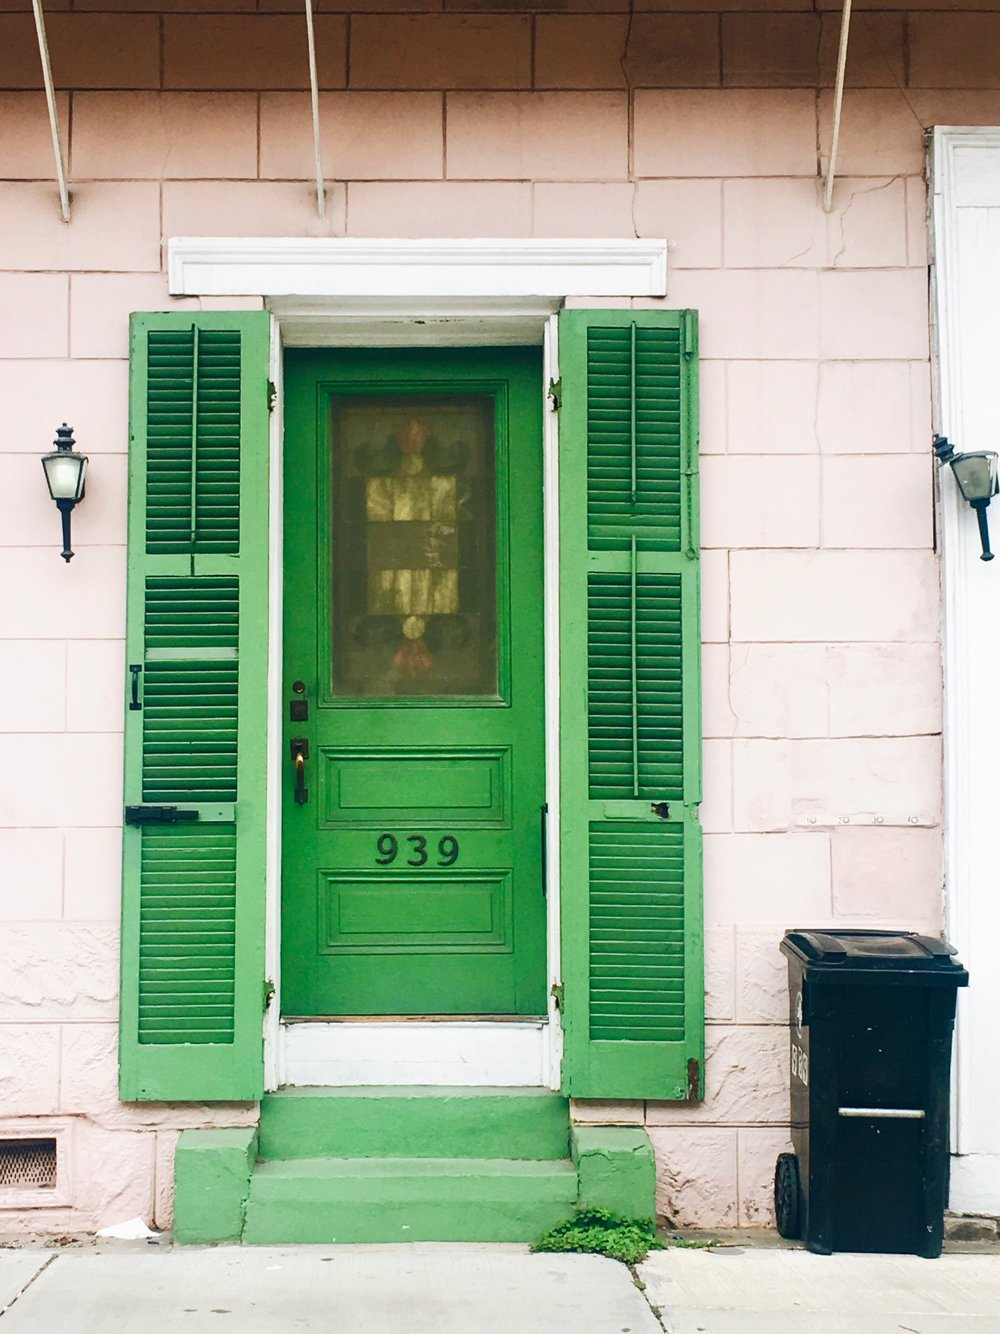 A day trip to New Orleans